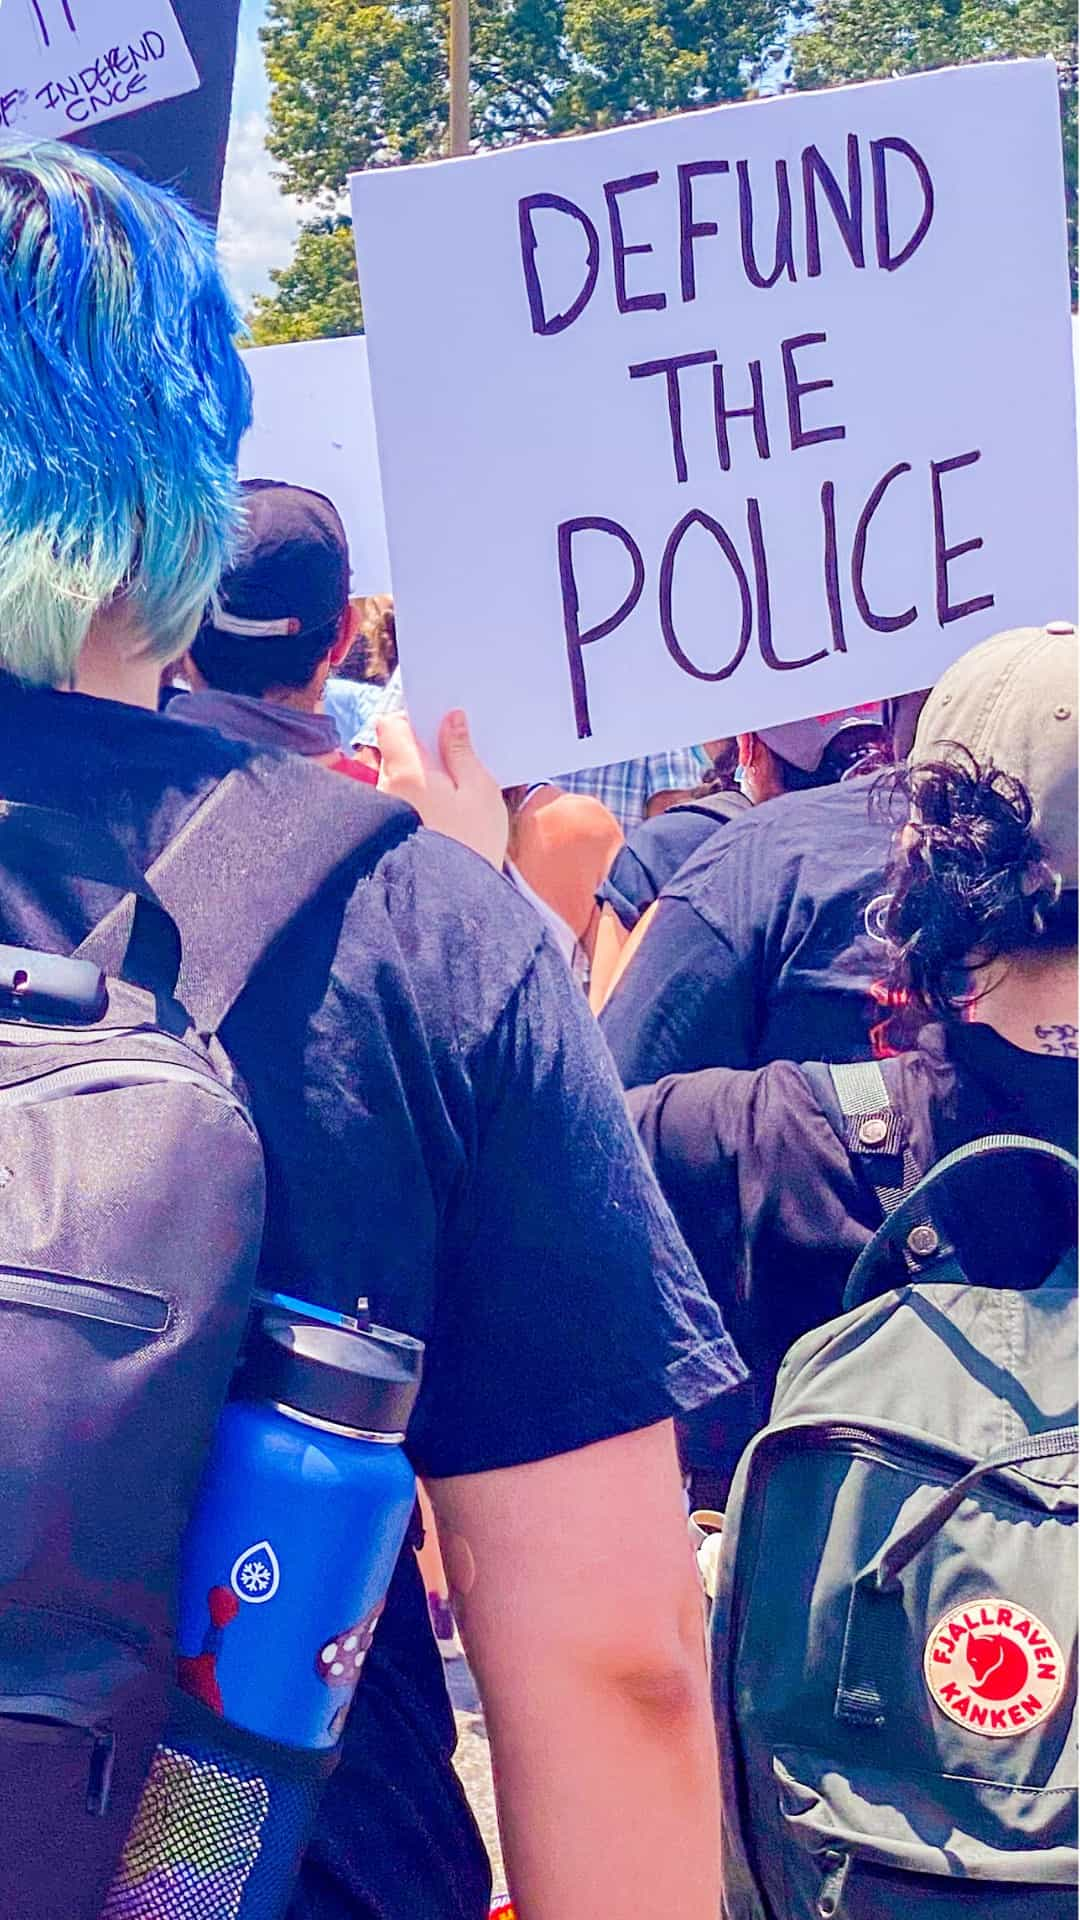 BLM Protest Signs Ideas- defund the police protest sign